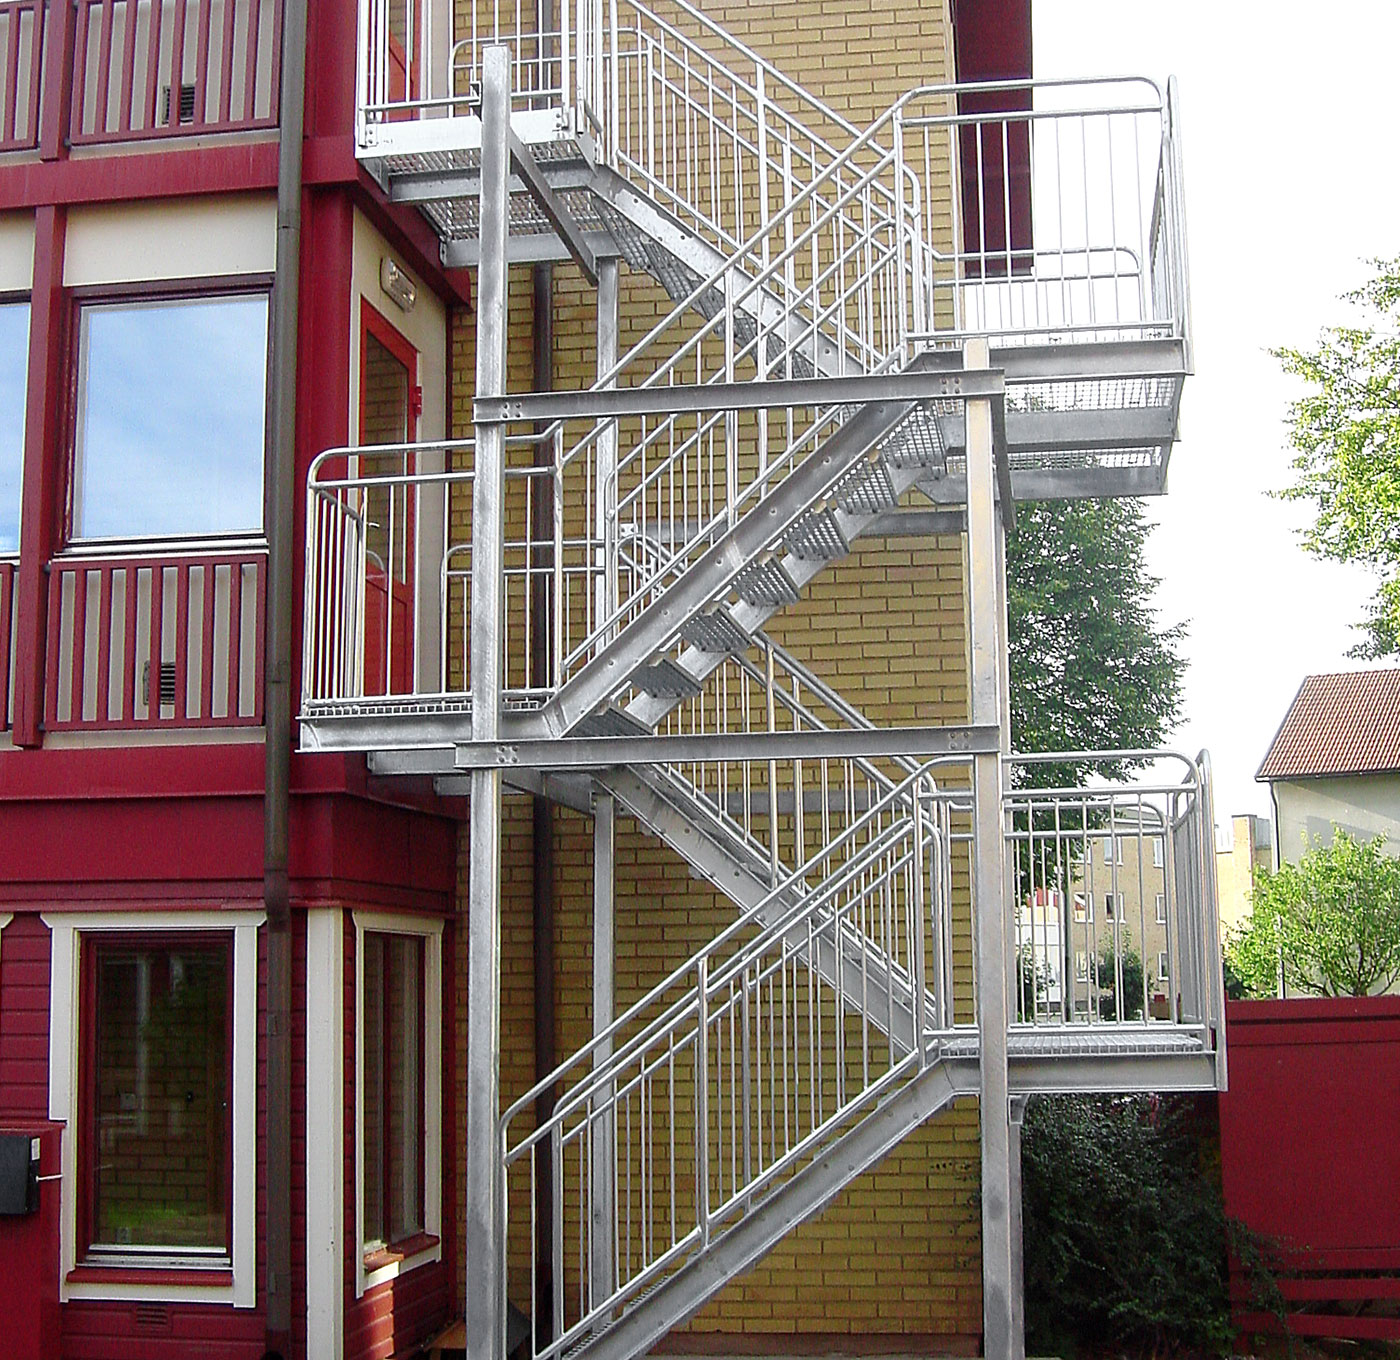 Hot-dip galvanized straight staircase with childsafe railing